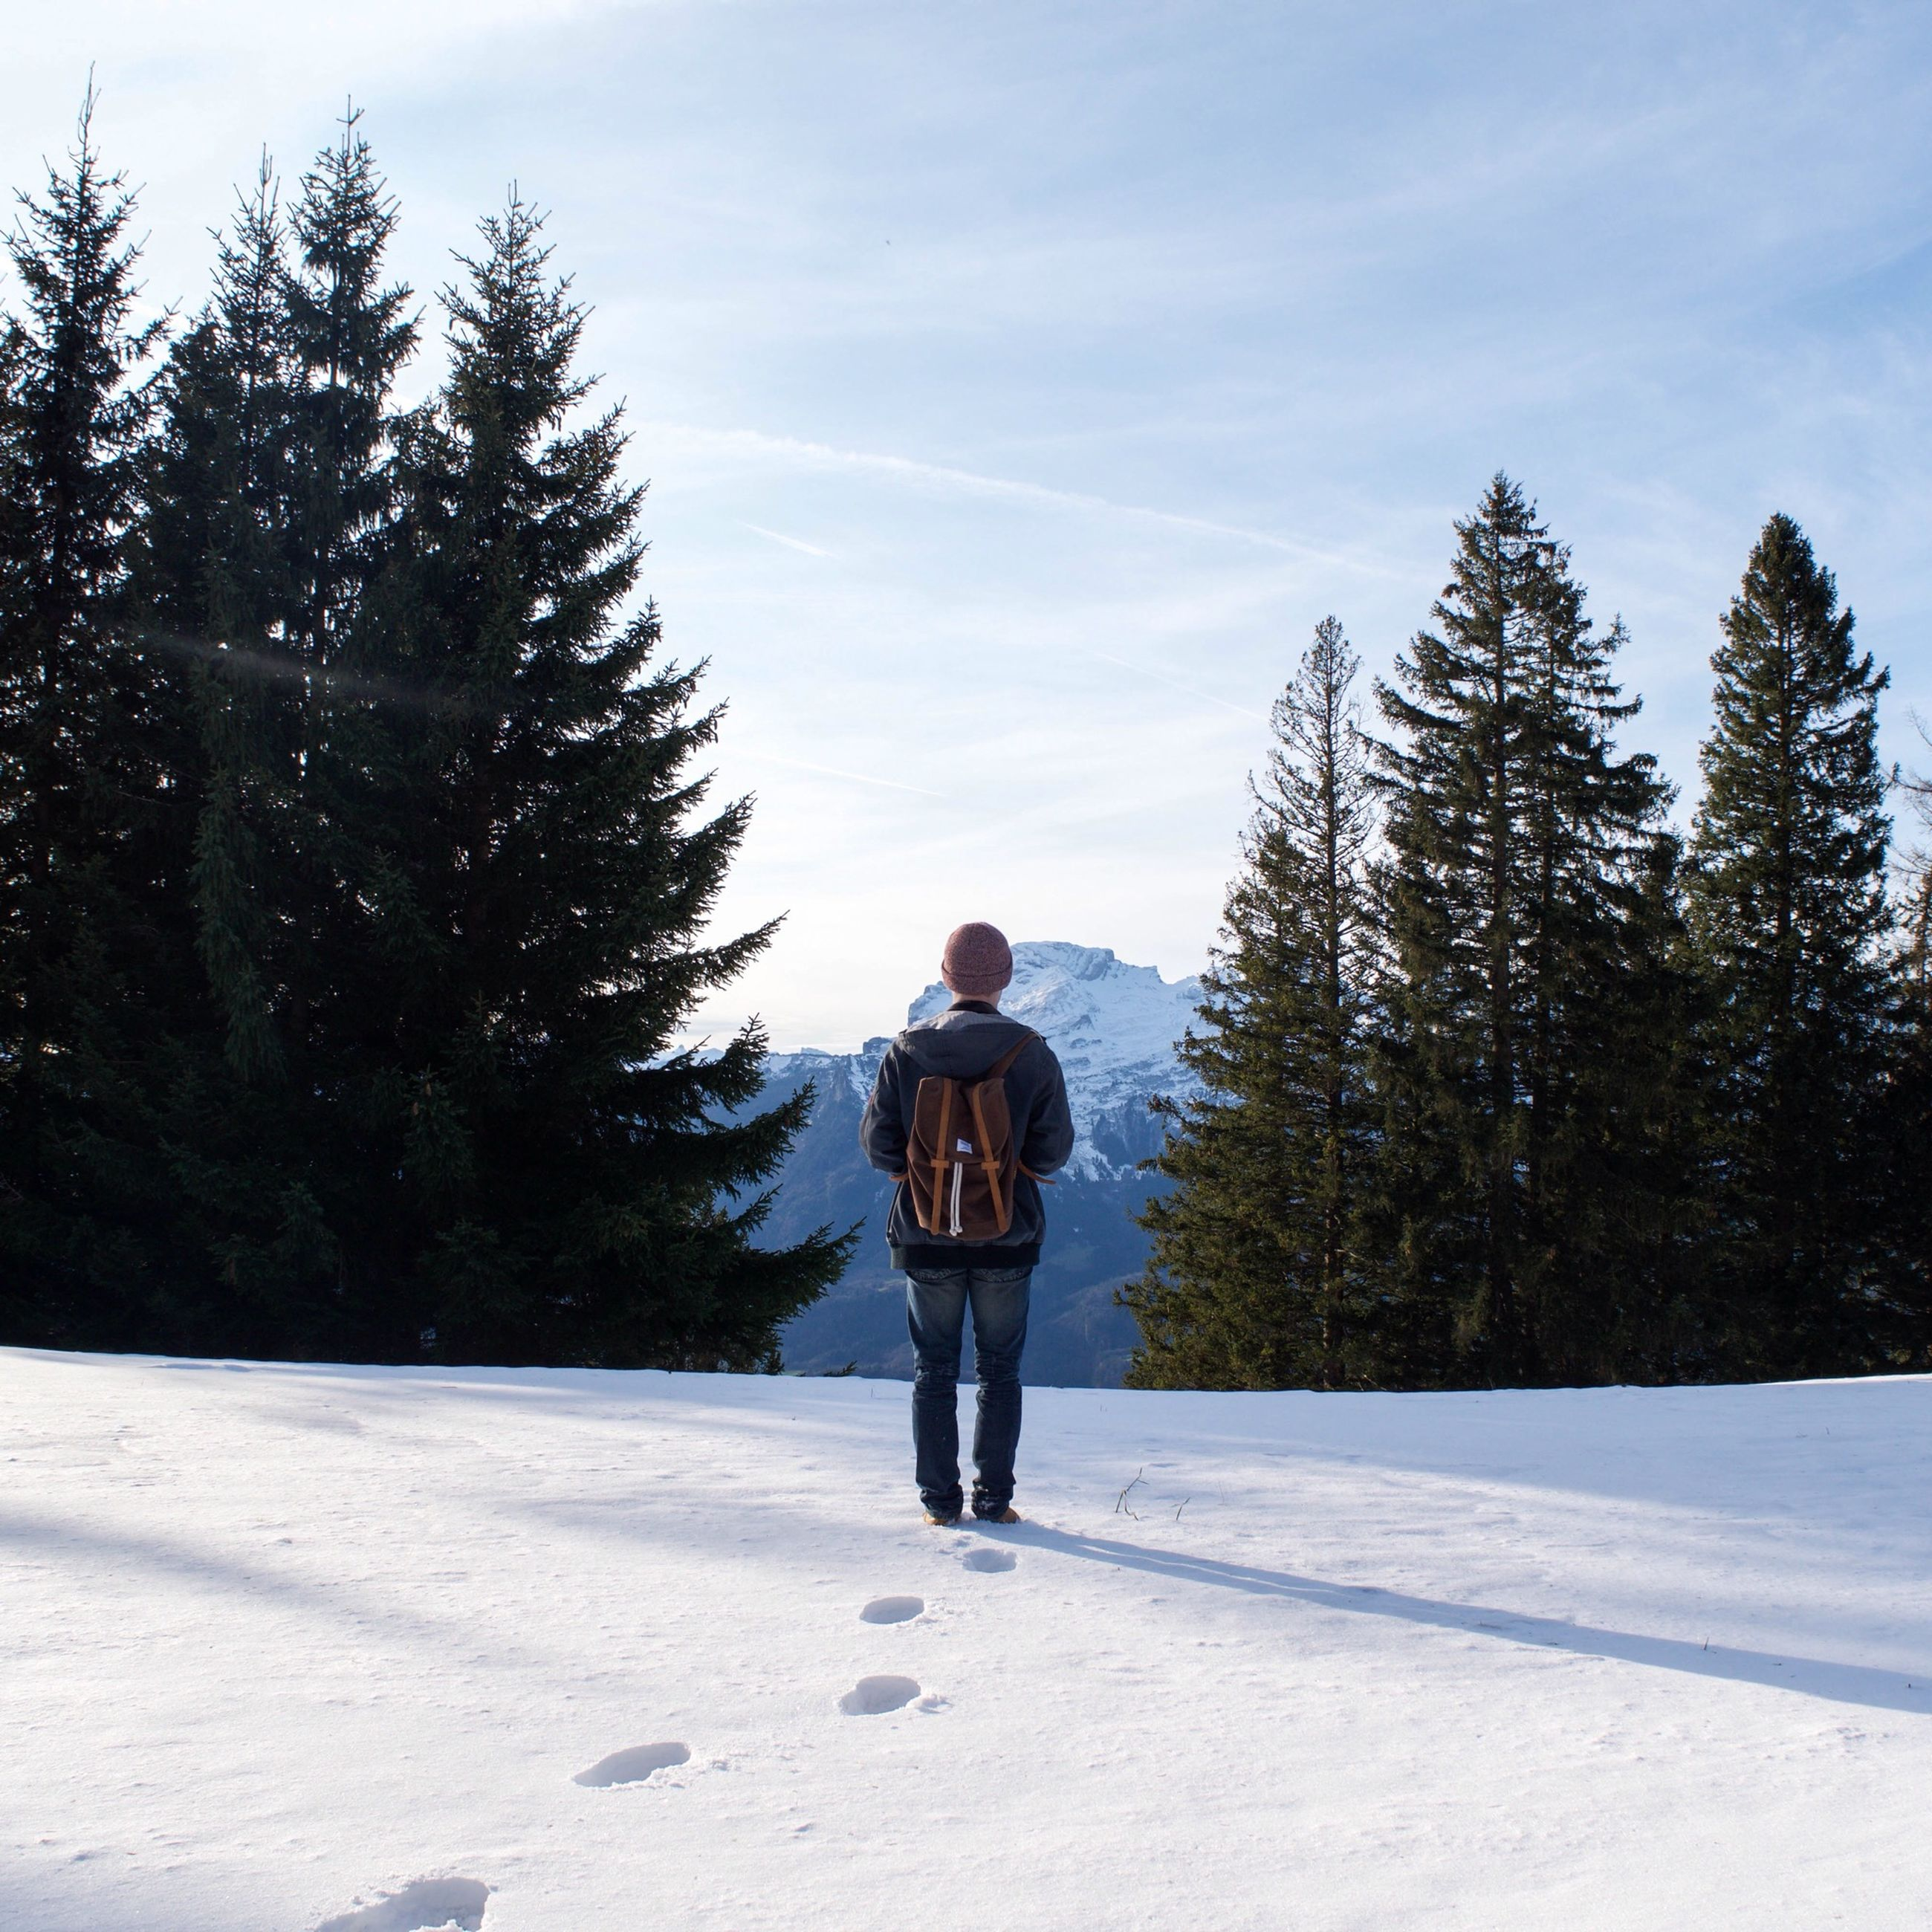 snow, winter, cold temperature, tree, full length, season, rear view, walking, lifestyles, sky, leisure activity, weather, warm clothing, nature, tranquil scene, white color, landscape, tranquility